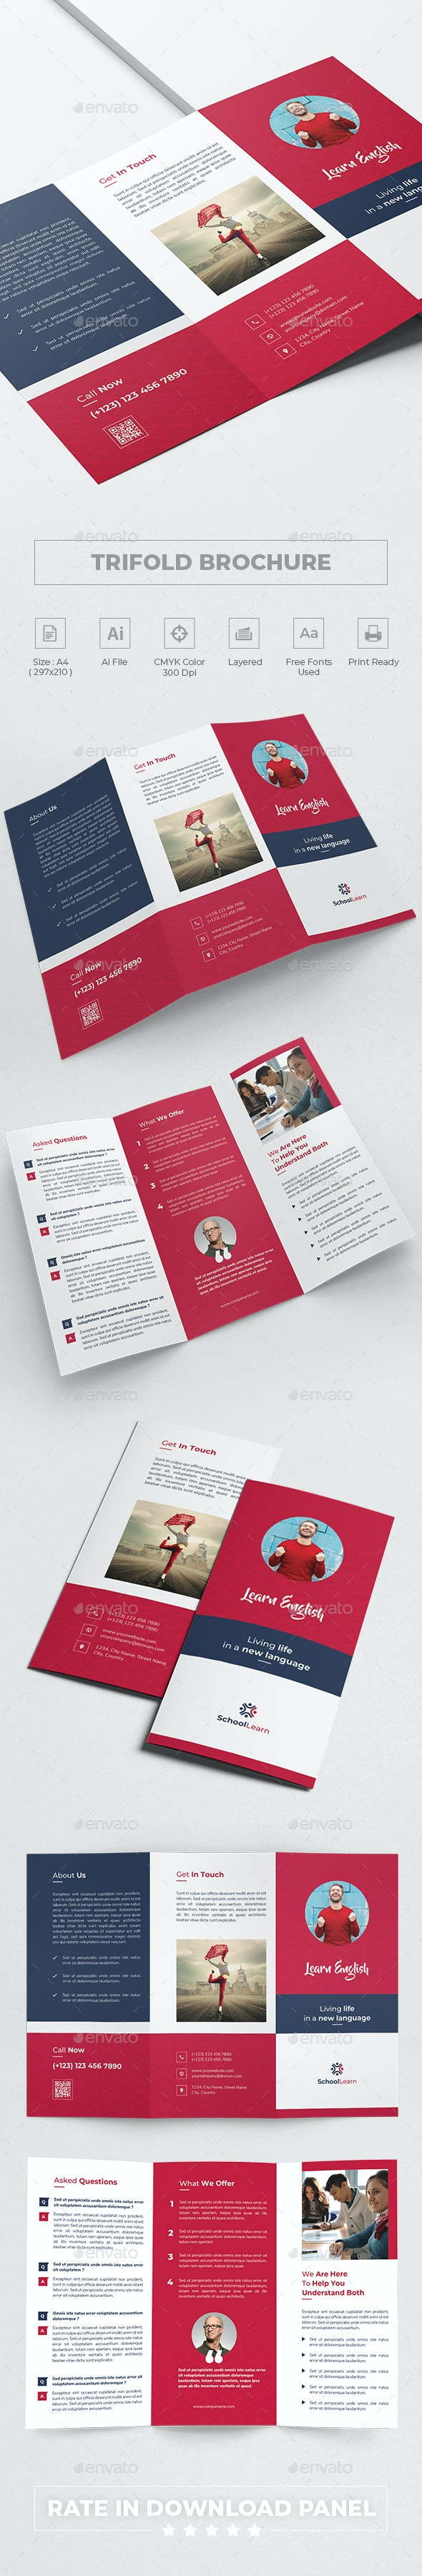 Learn Language Trifold Brochure - Informational Brochures